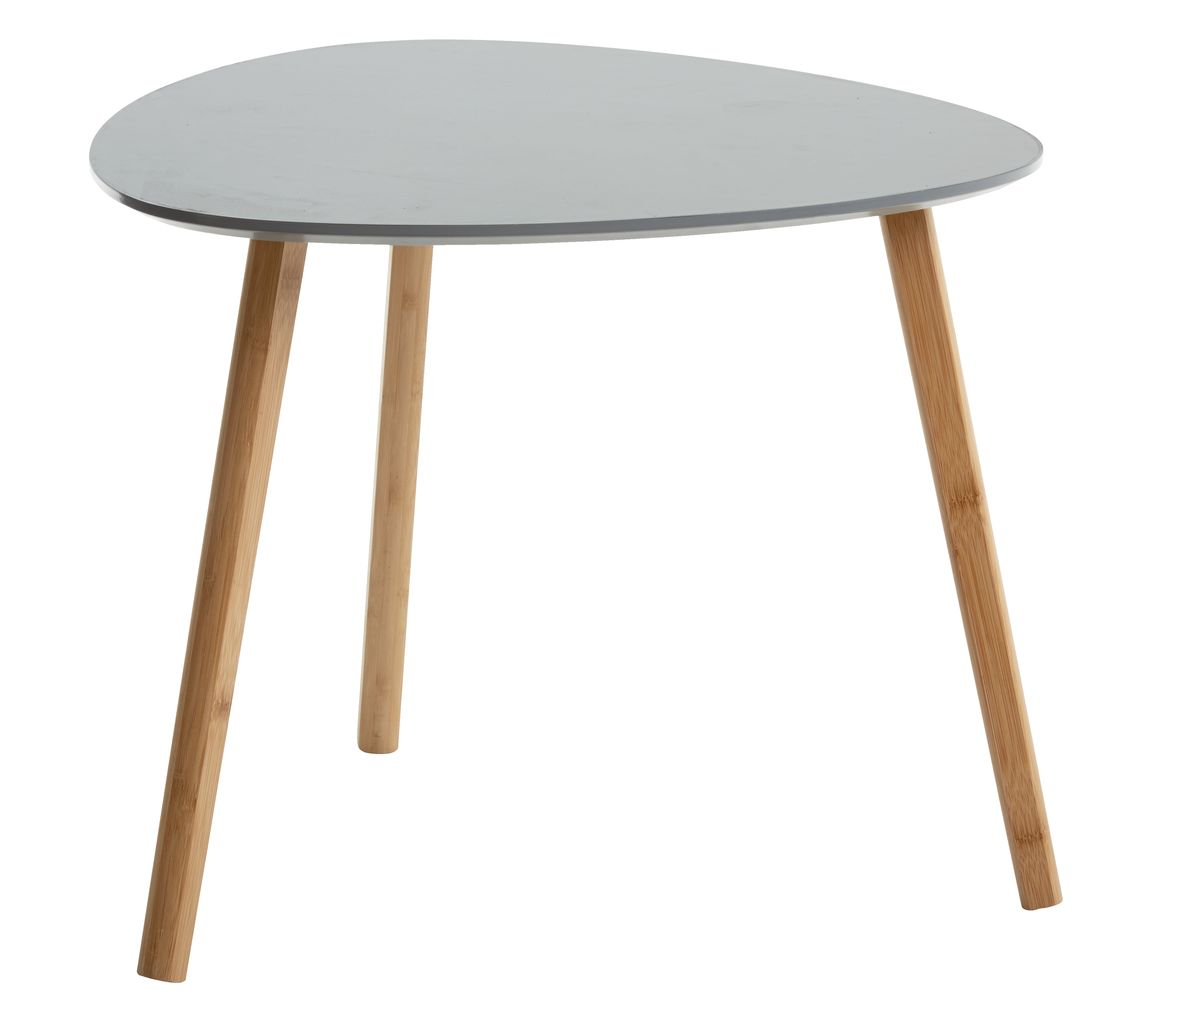 End Table TAPS 55x55 Grey Bamboo